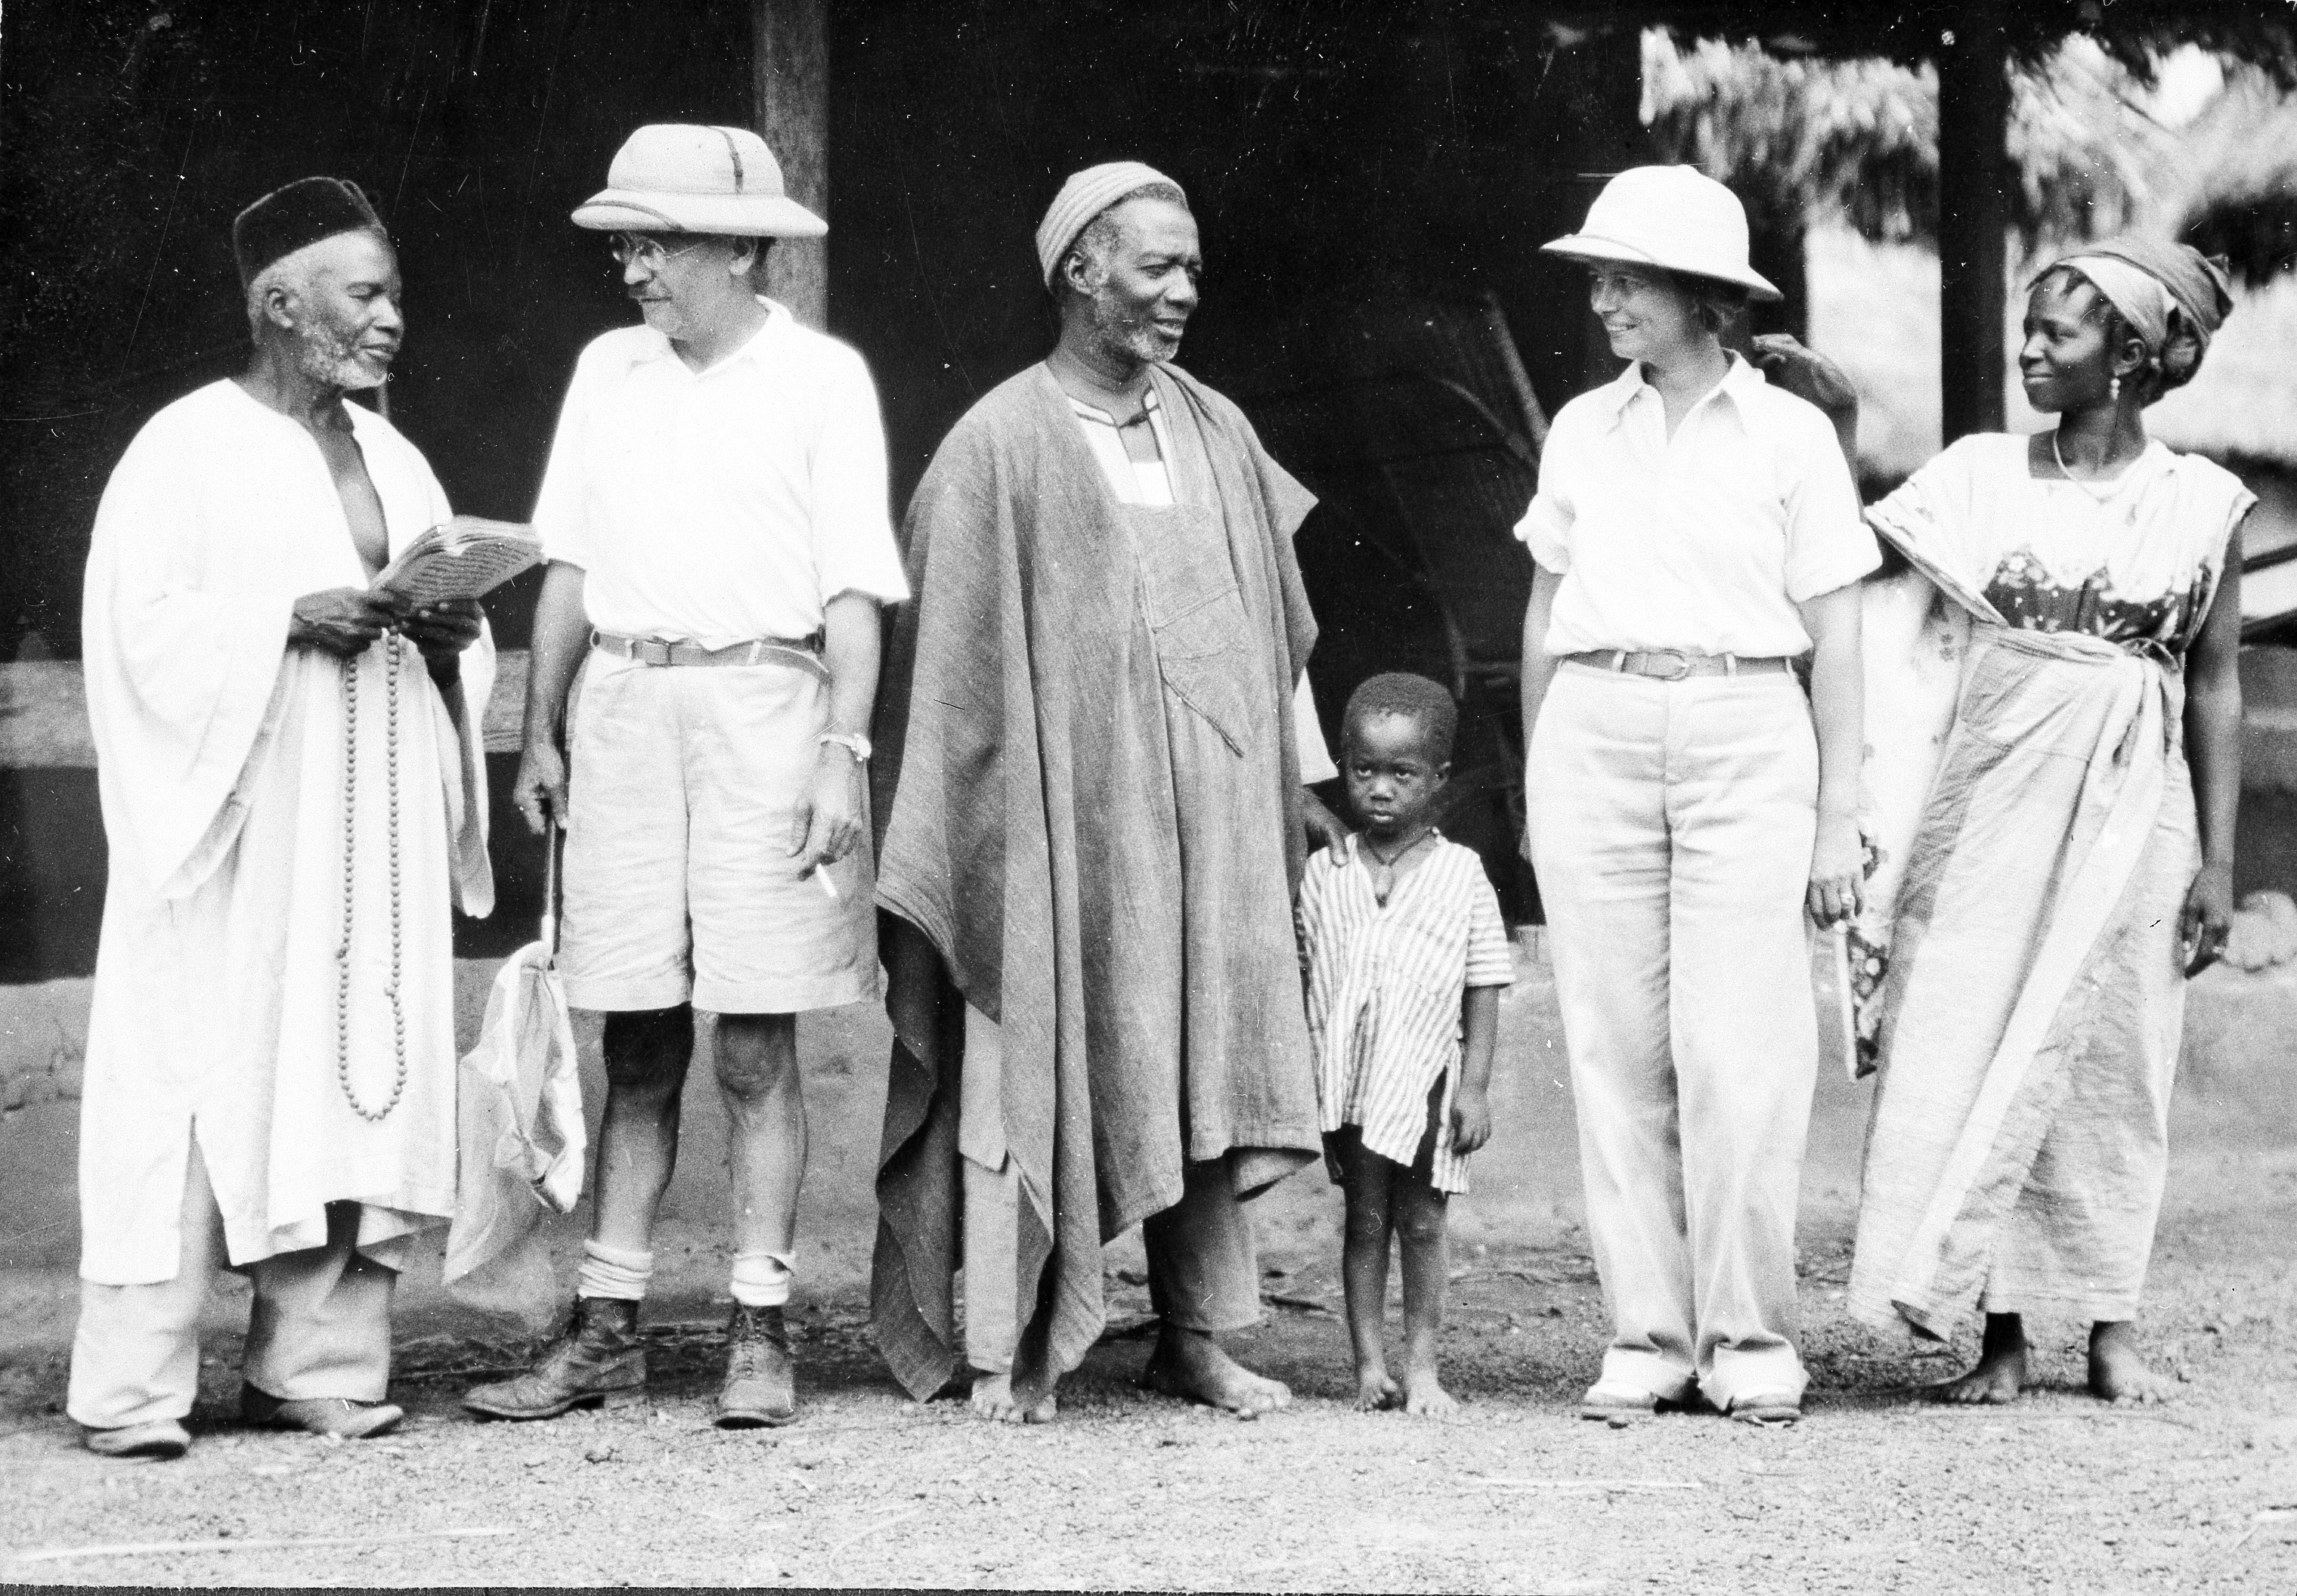 William and Lucile Mann stand with people from a village they are visiting.